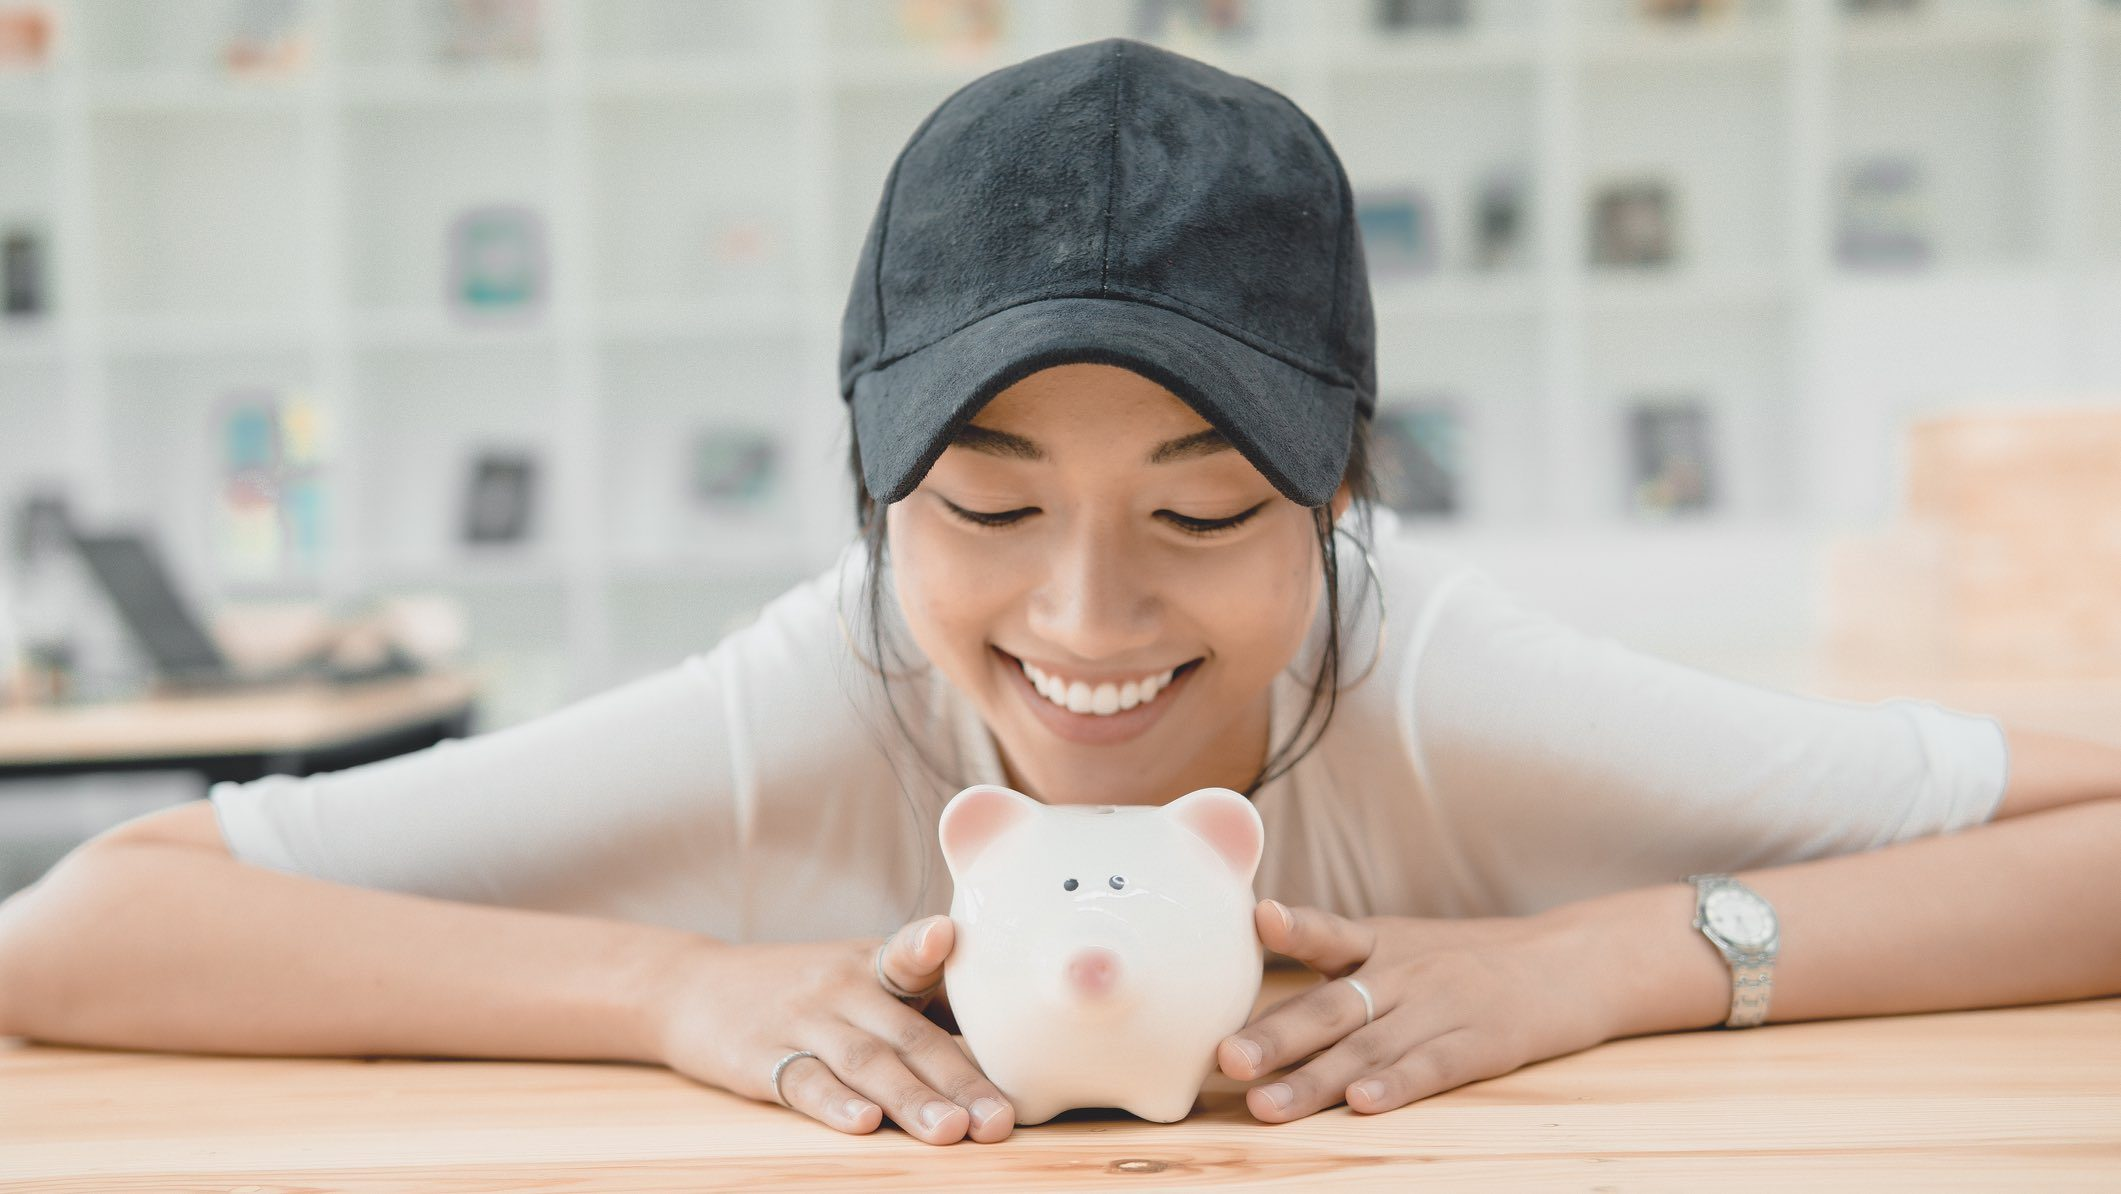 Person smiling at piggy bank, thinking about Teachers Mutual Bank award win.